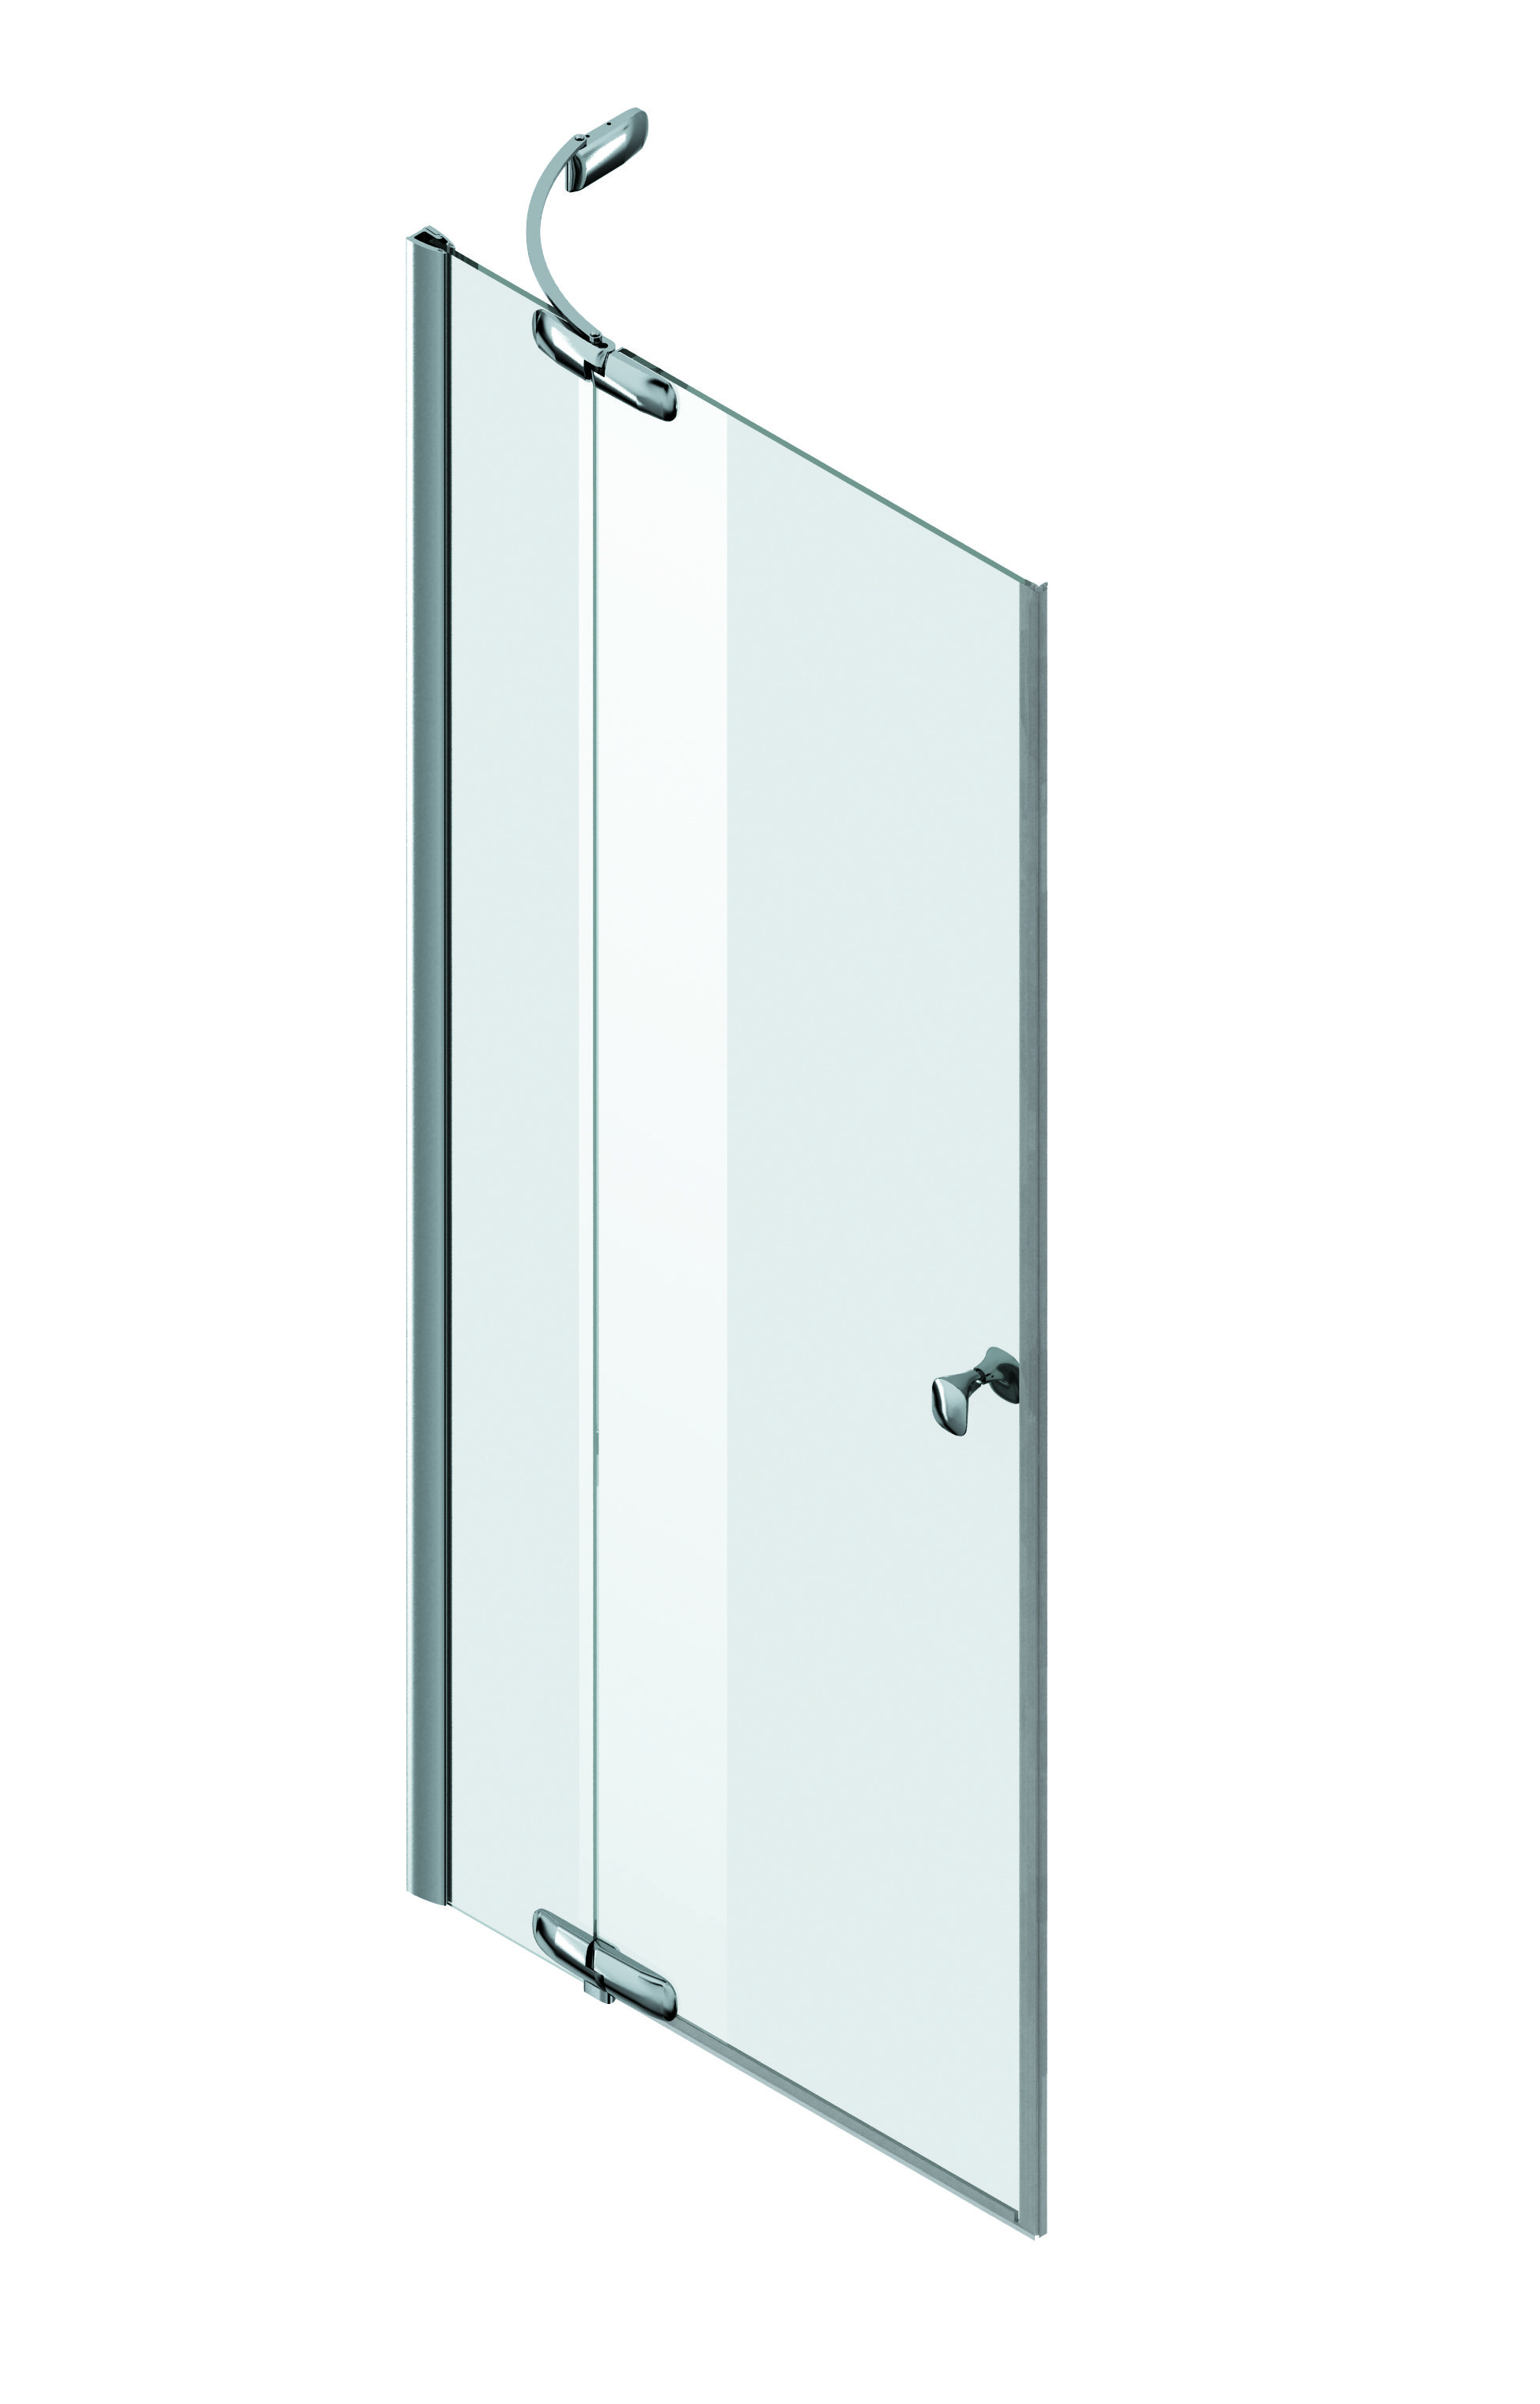 W30G-E3D6-200-CT L/R Pivot door with fixed segment